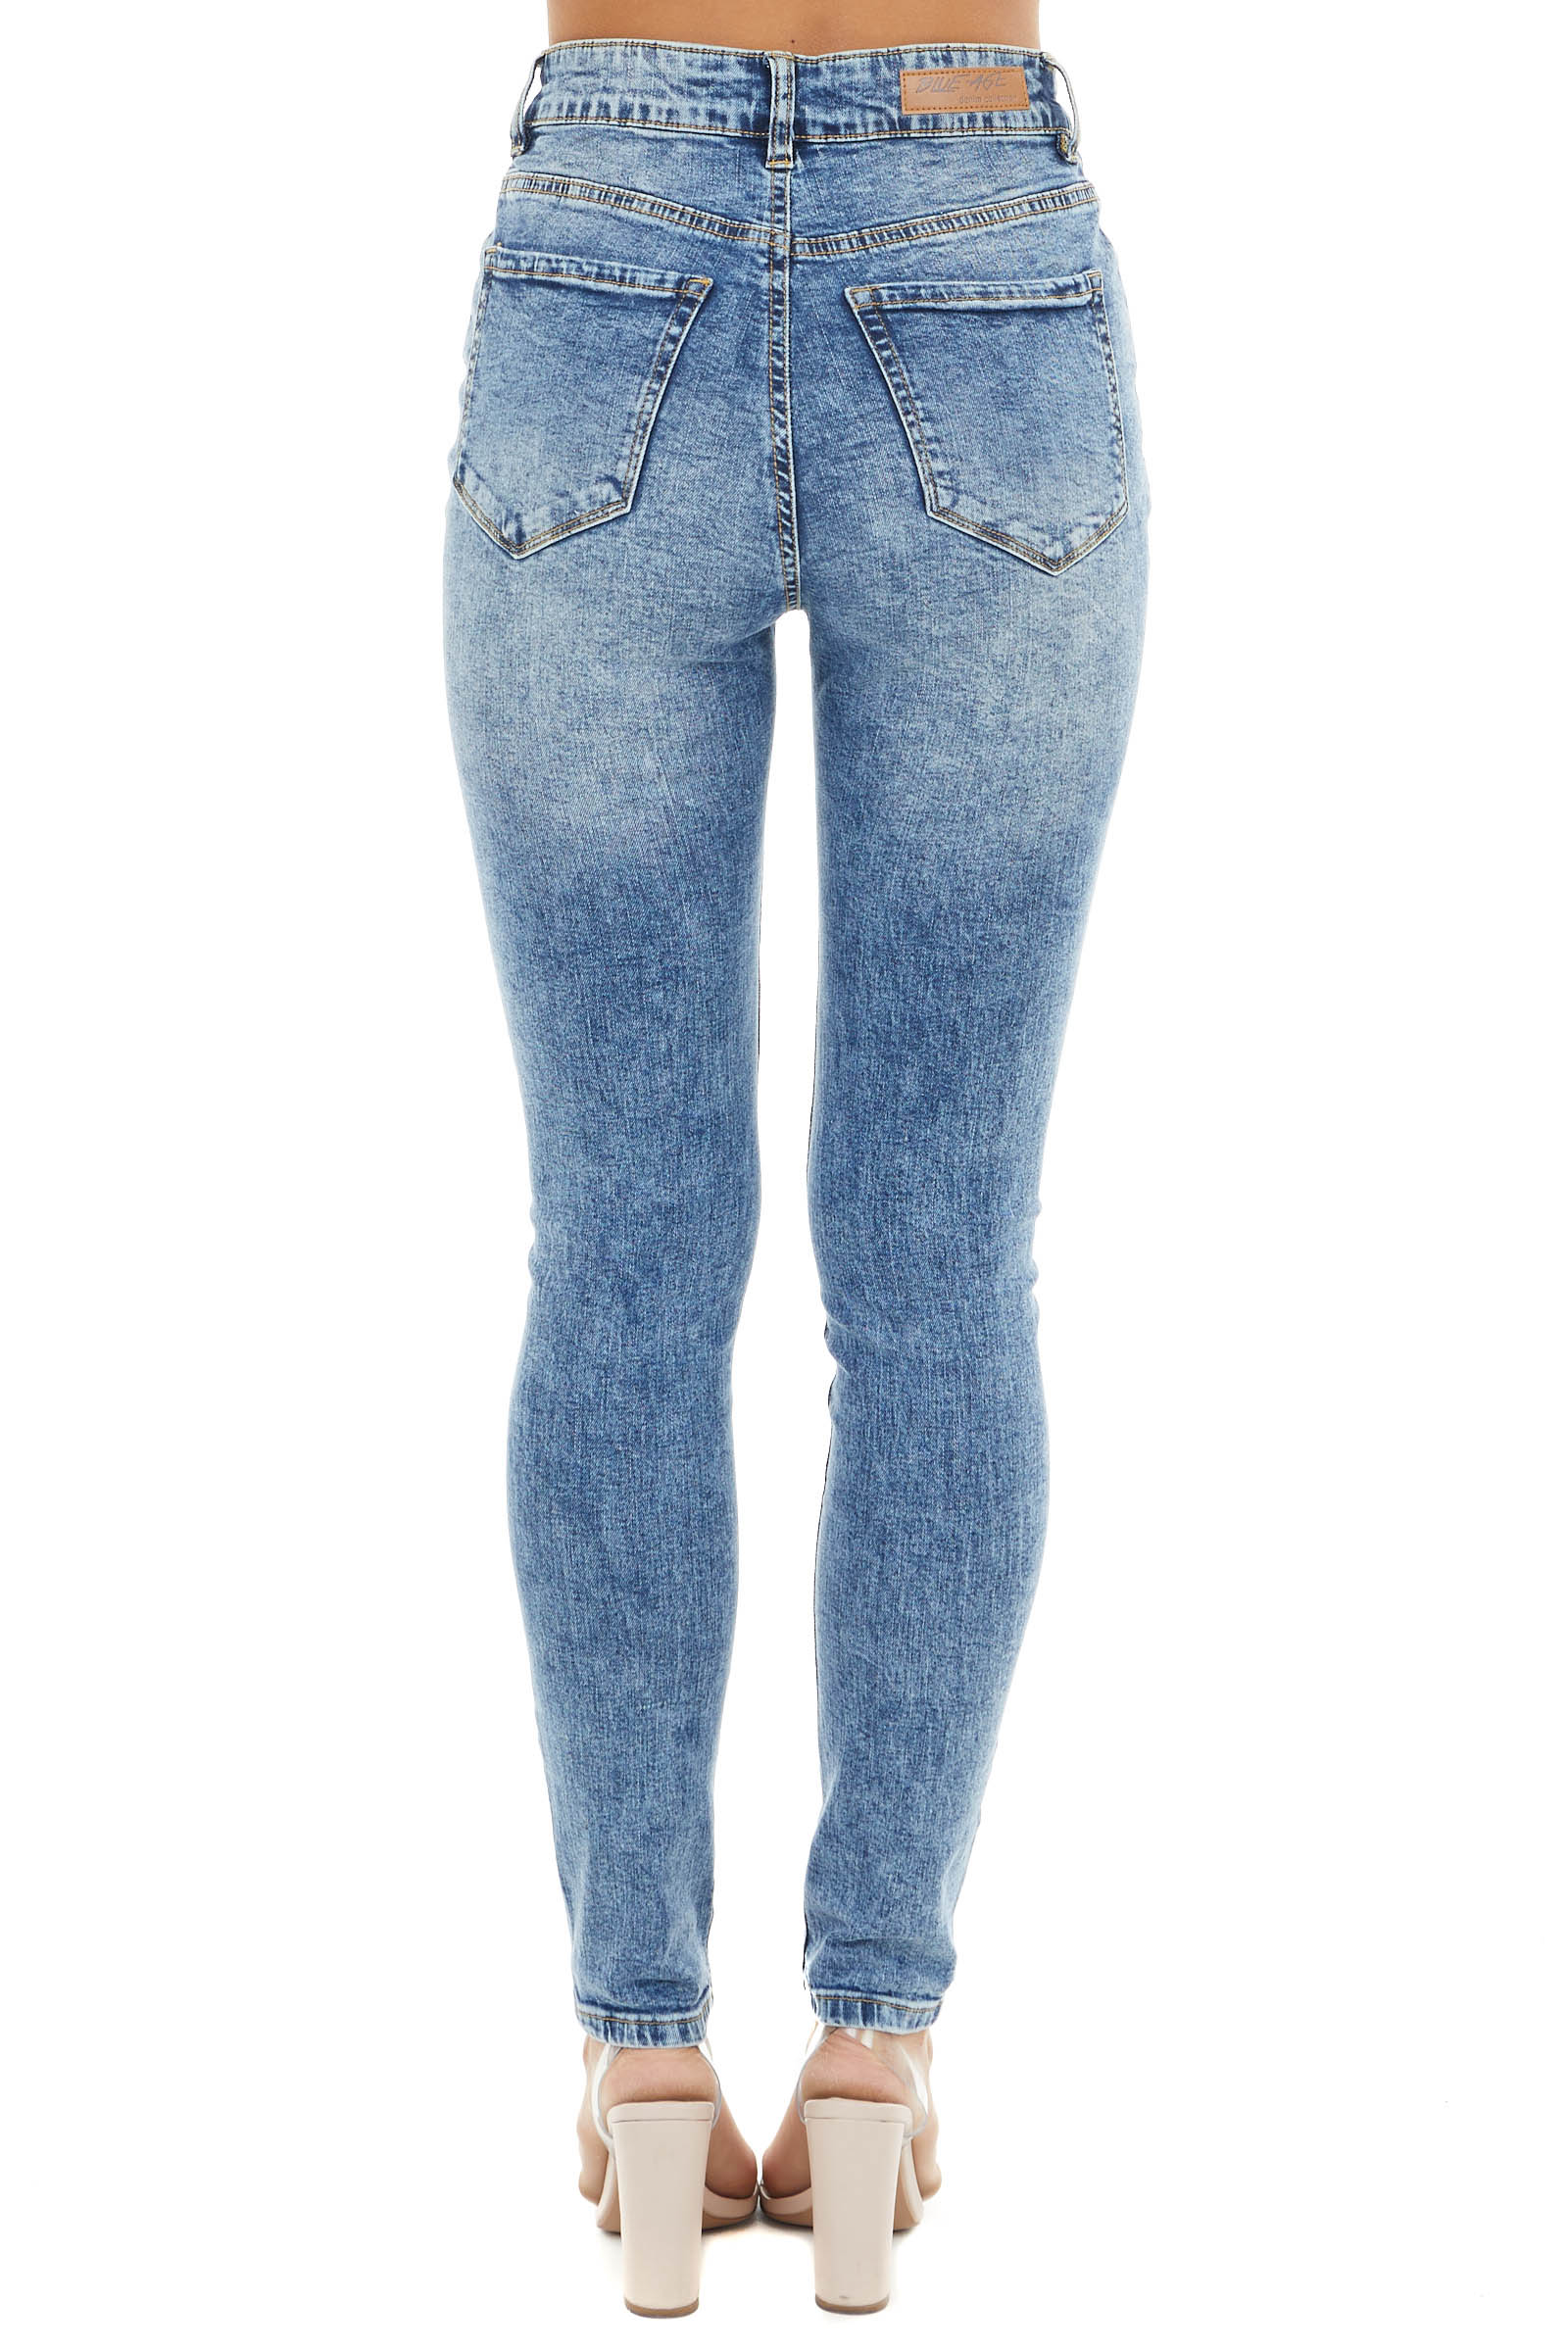 Blue Acid Wash Distressed High Rise Denim Skinny Jeans